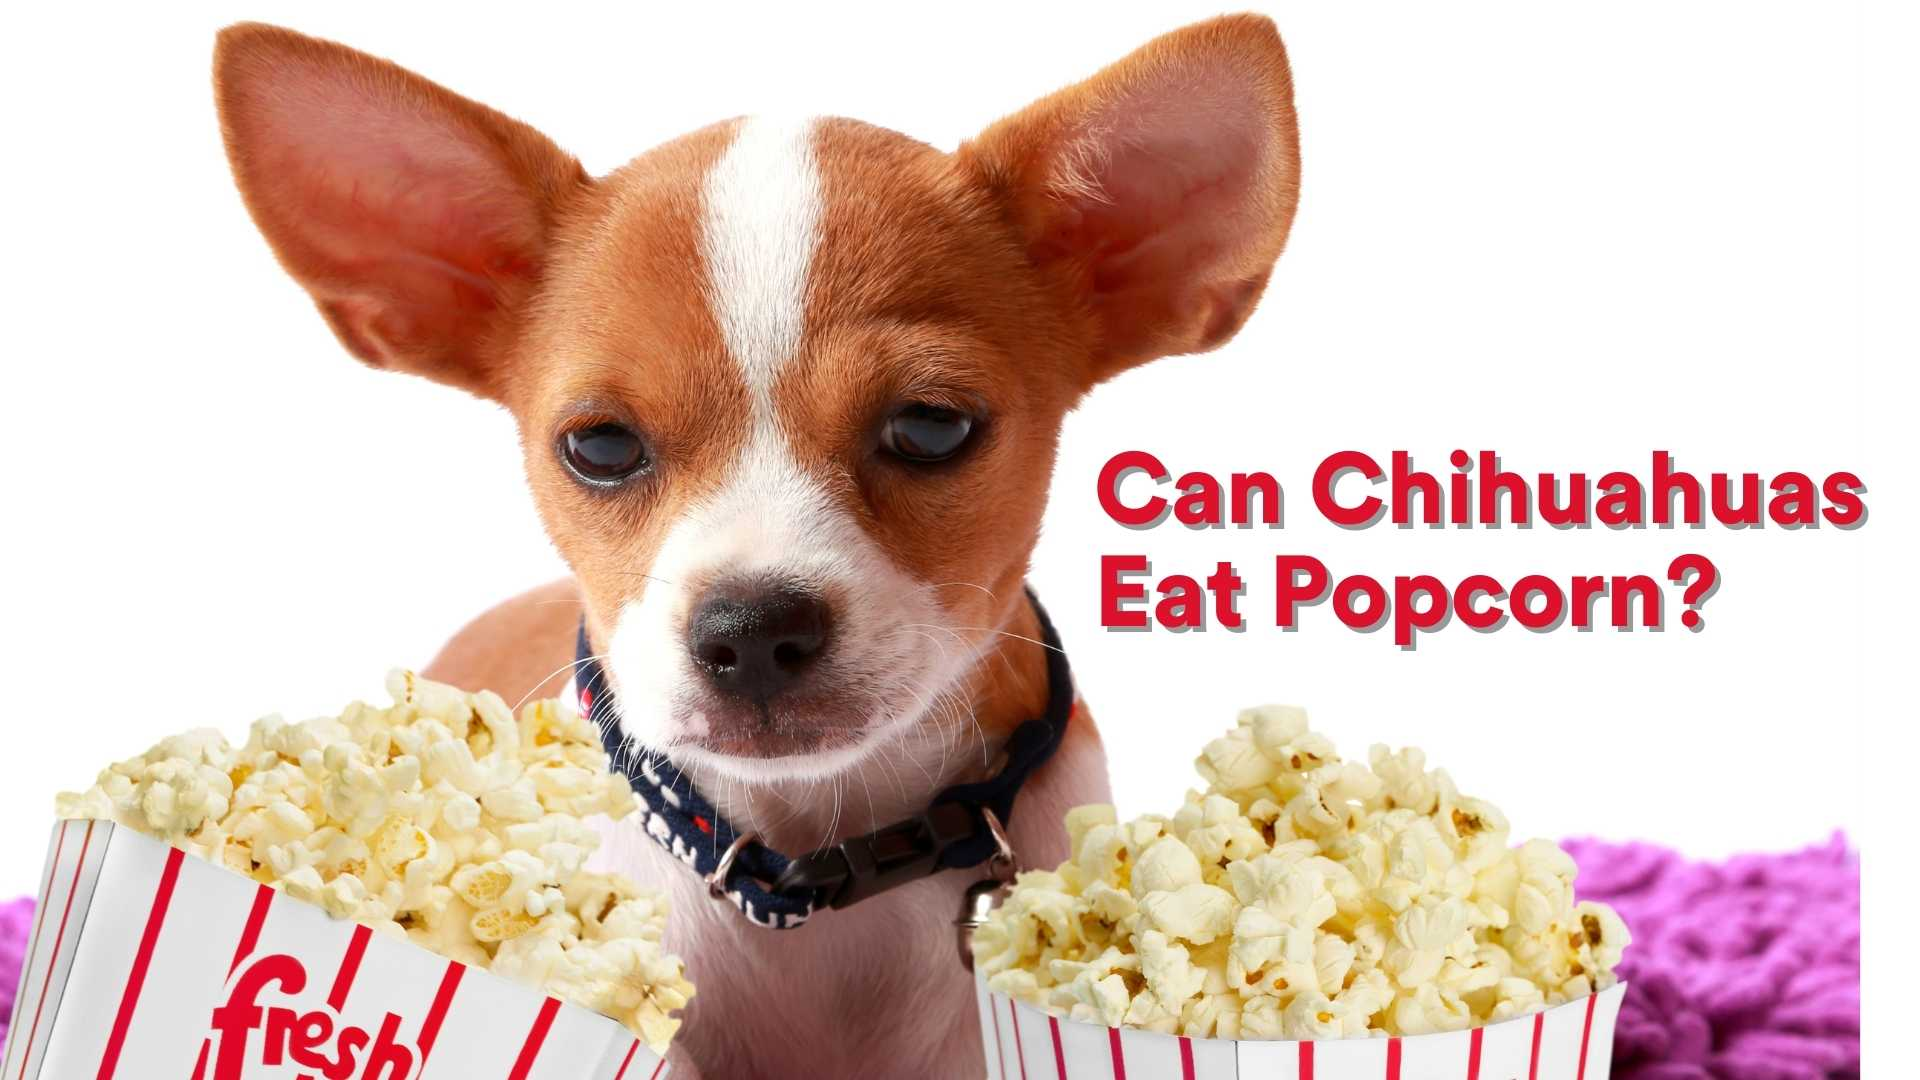 Can Chihuahuas Eat Popcorn?